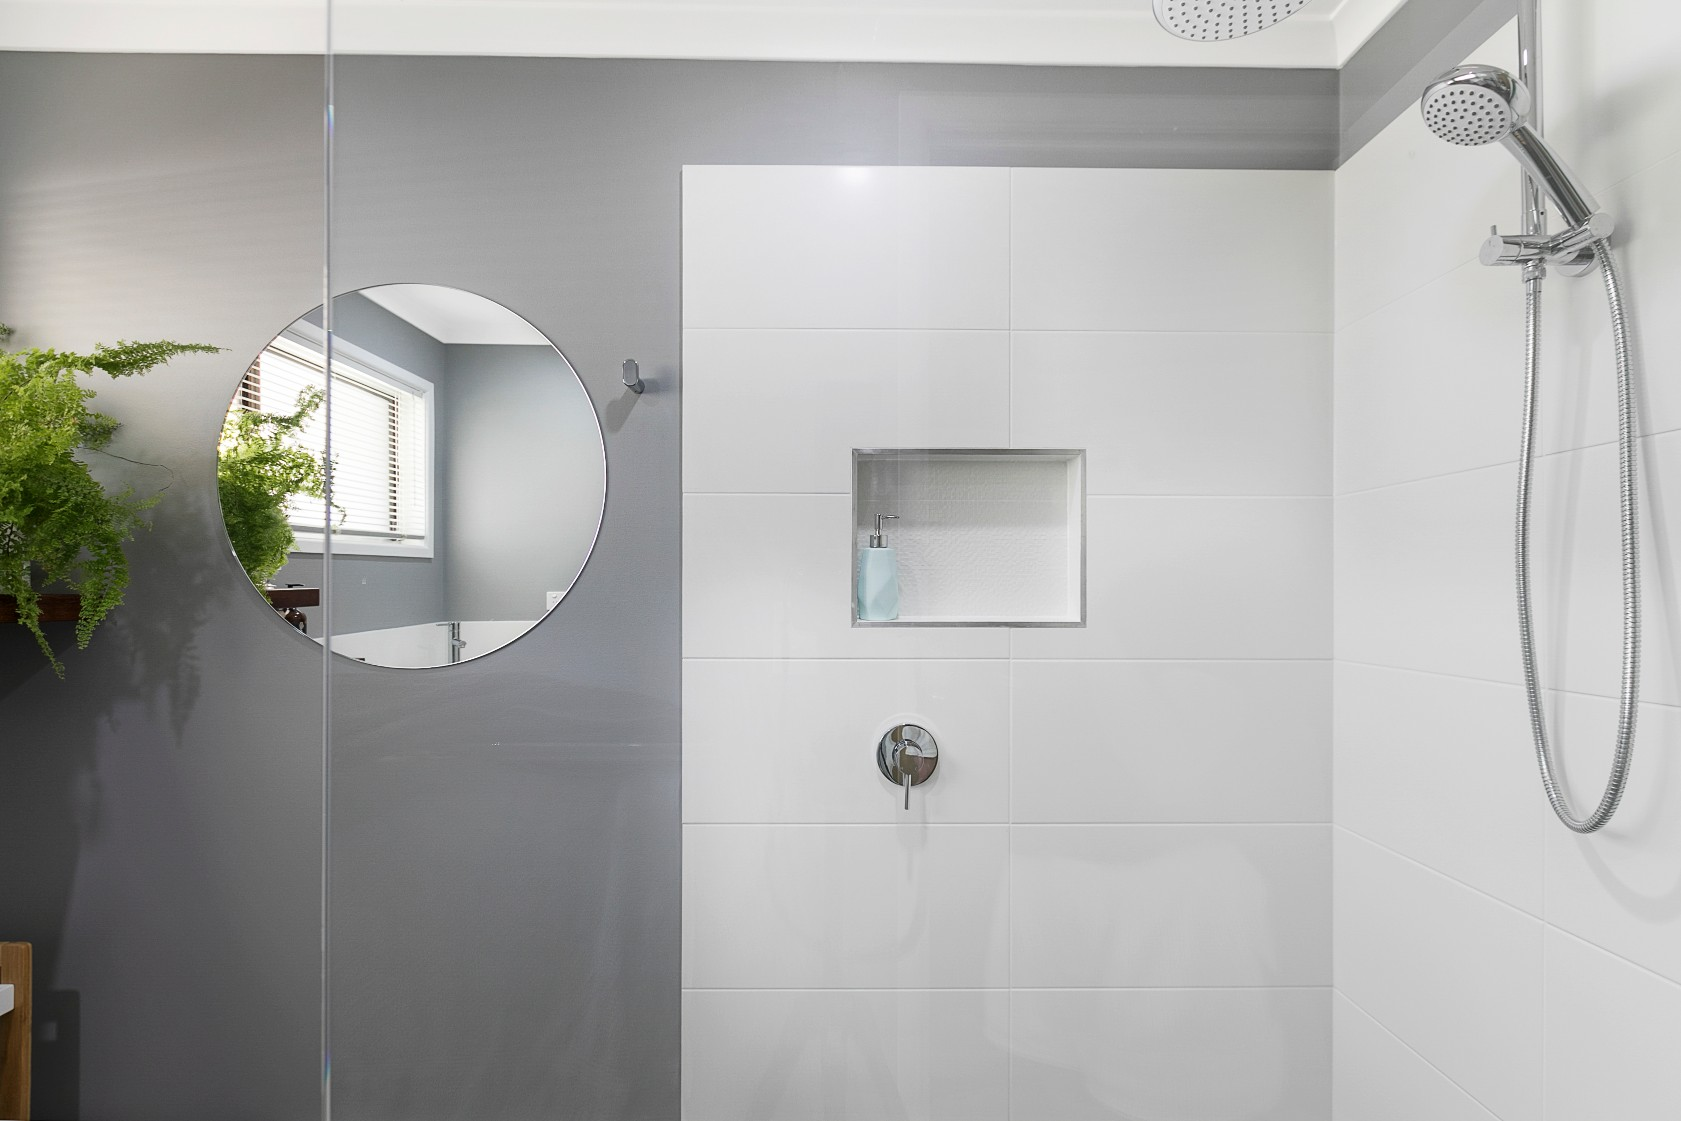 Achieve an Affordable Bathroom Renovation